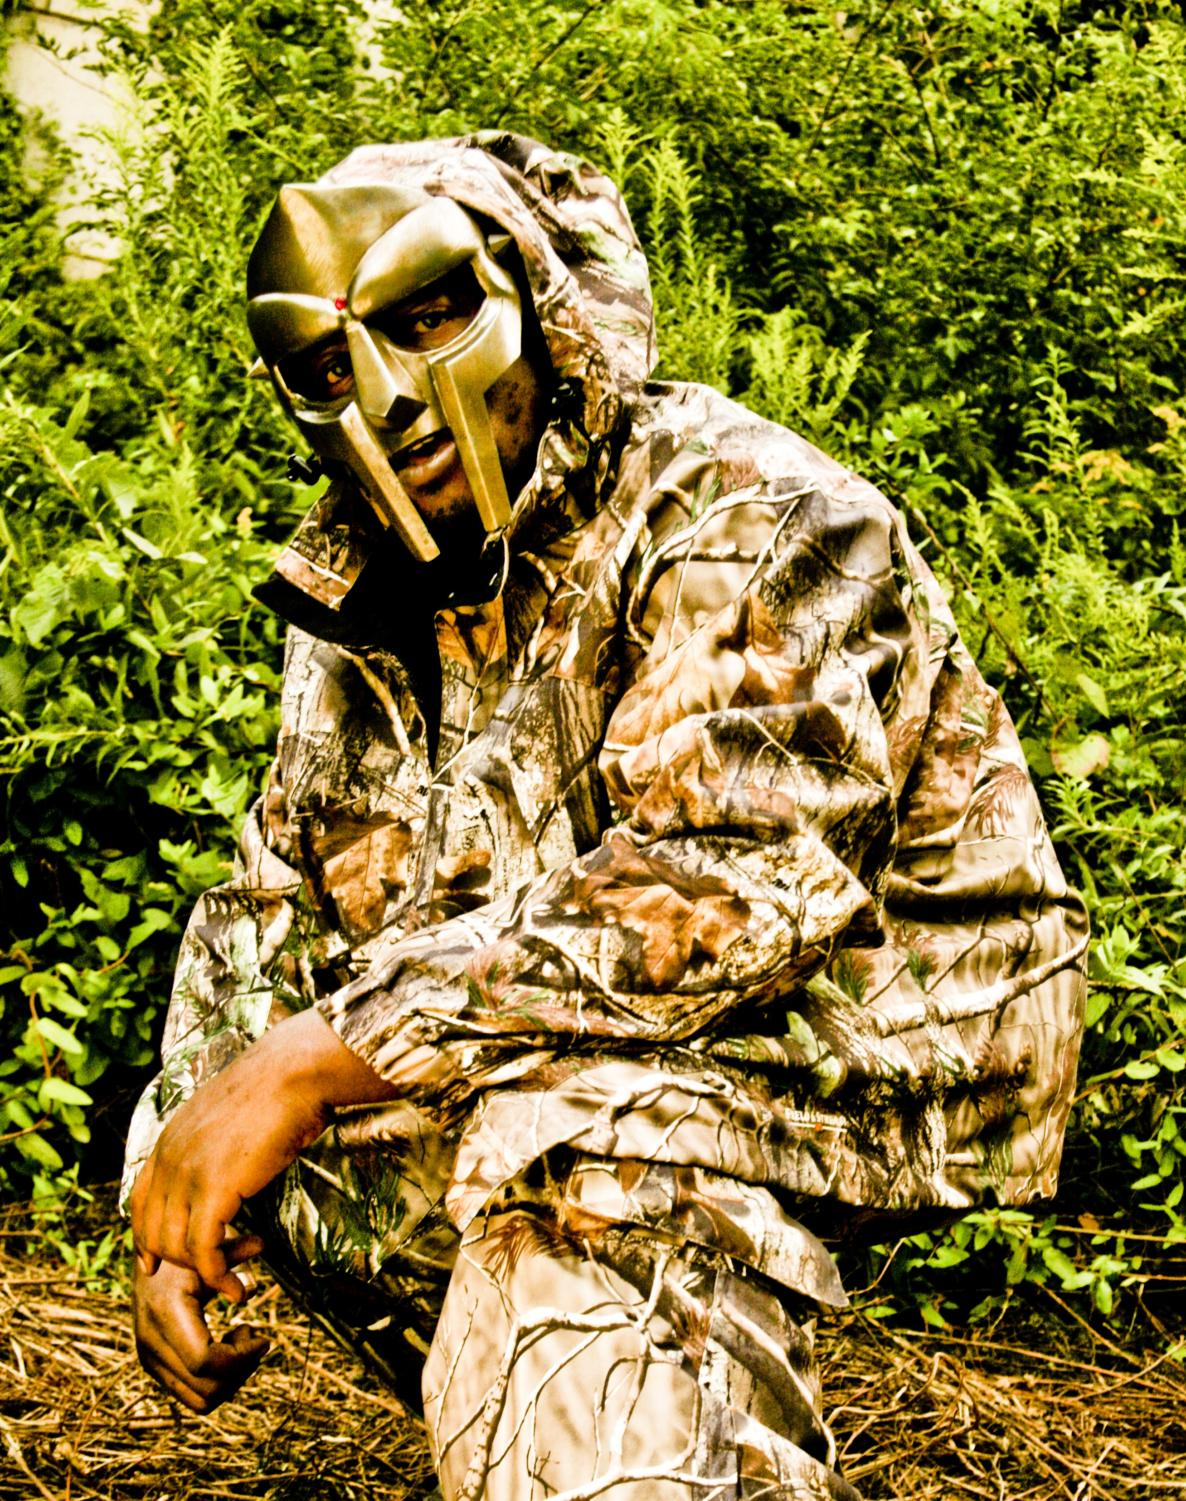 The masked rapper, MF Doom